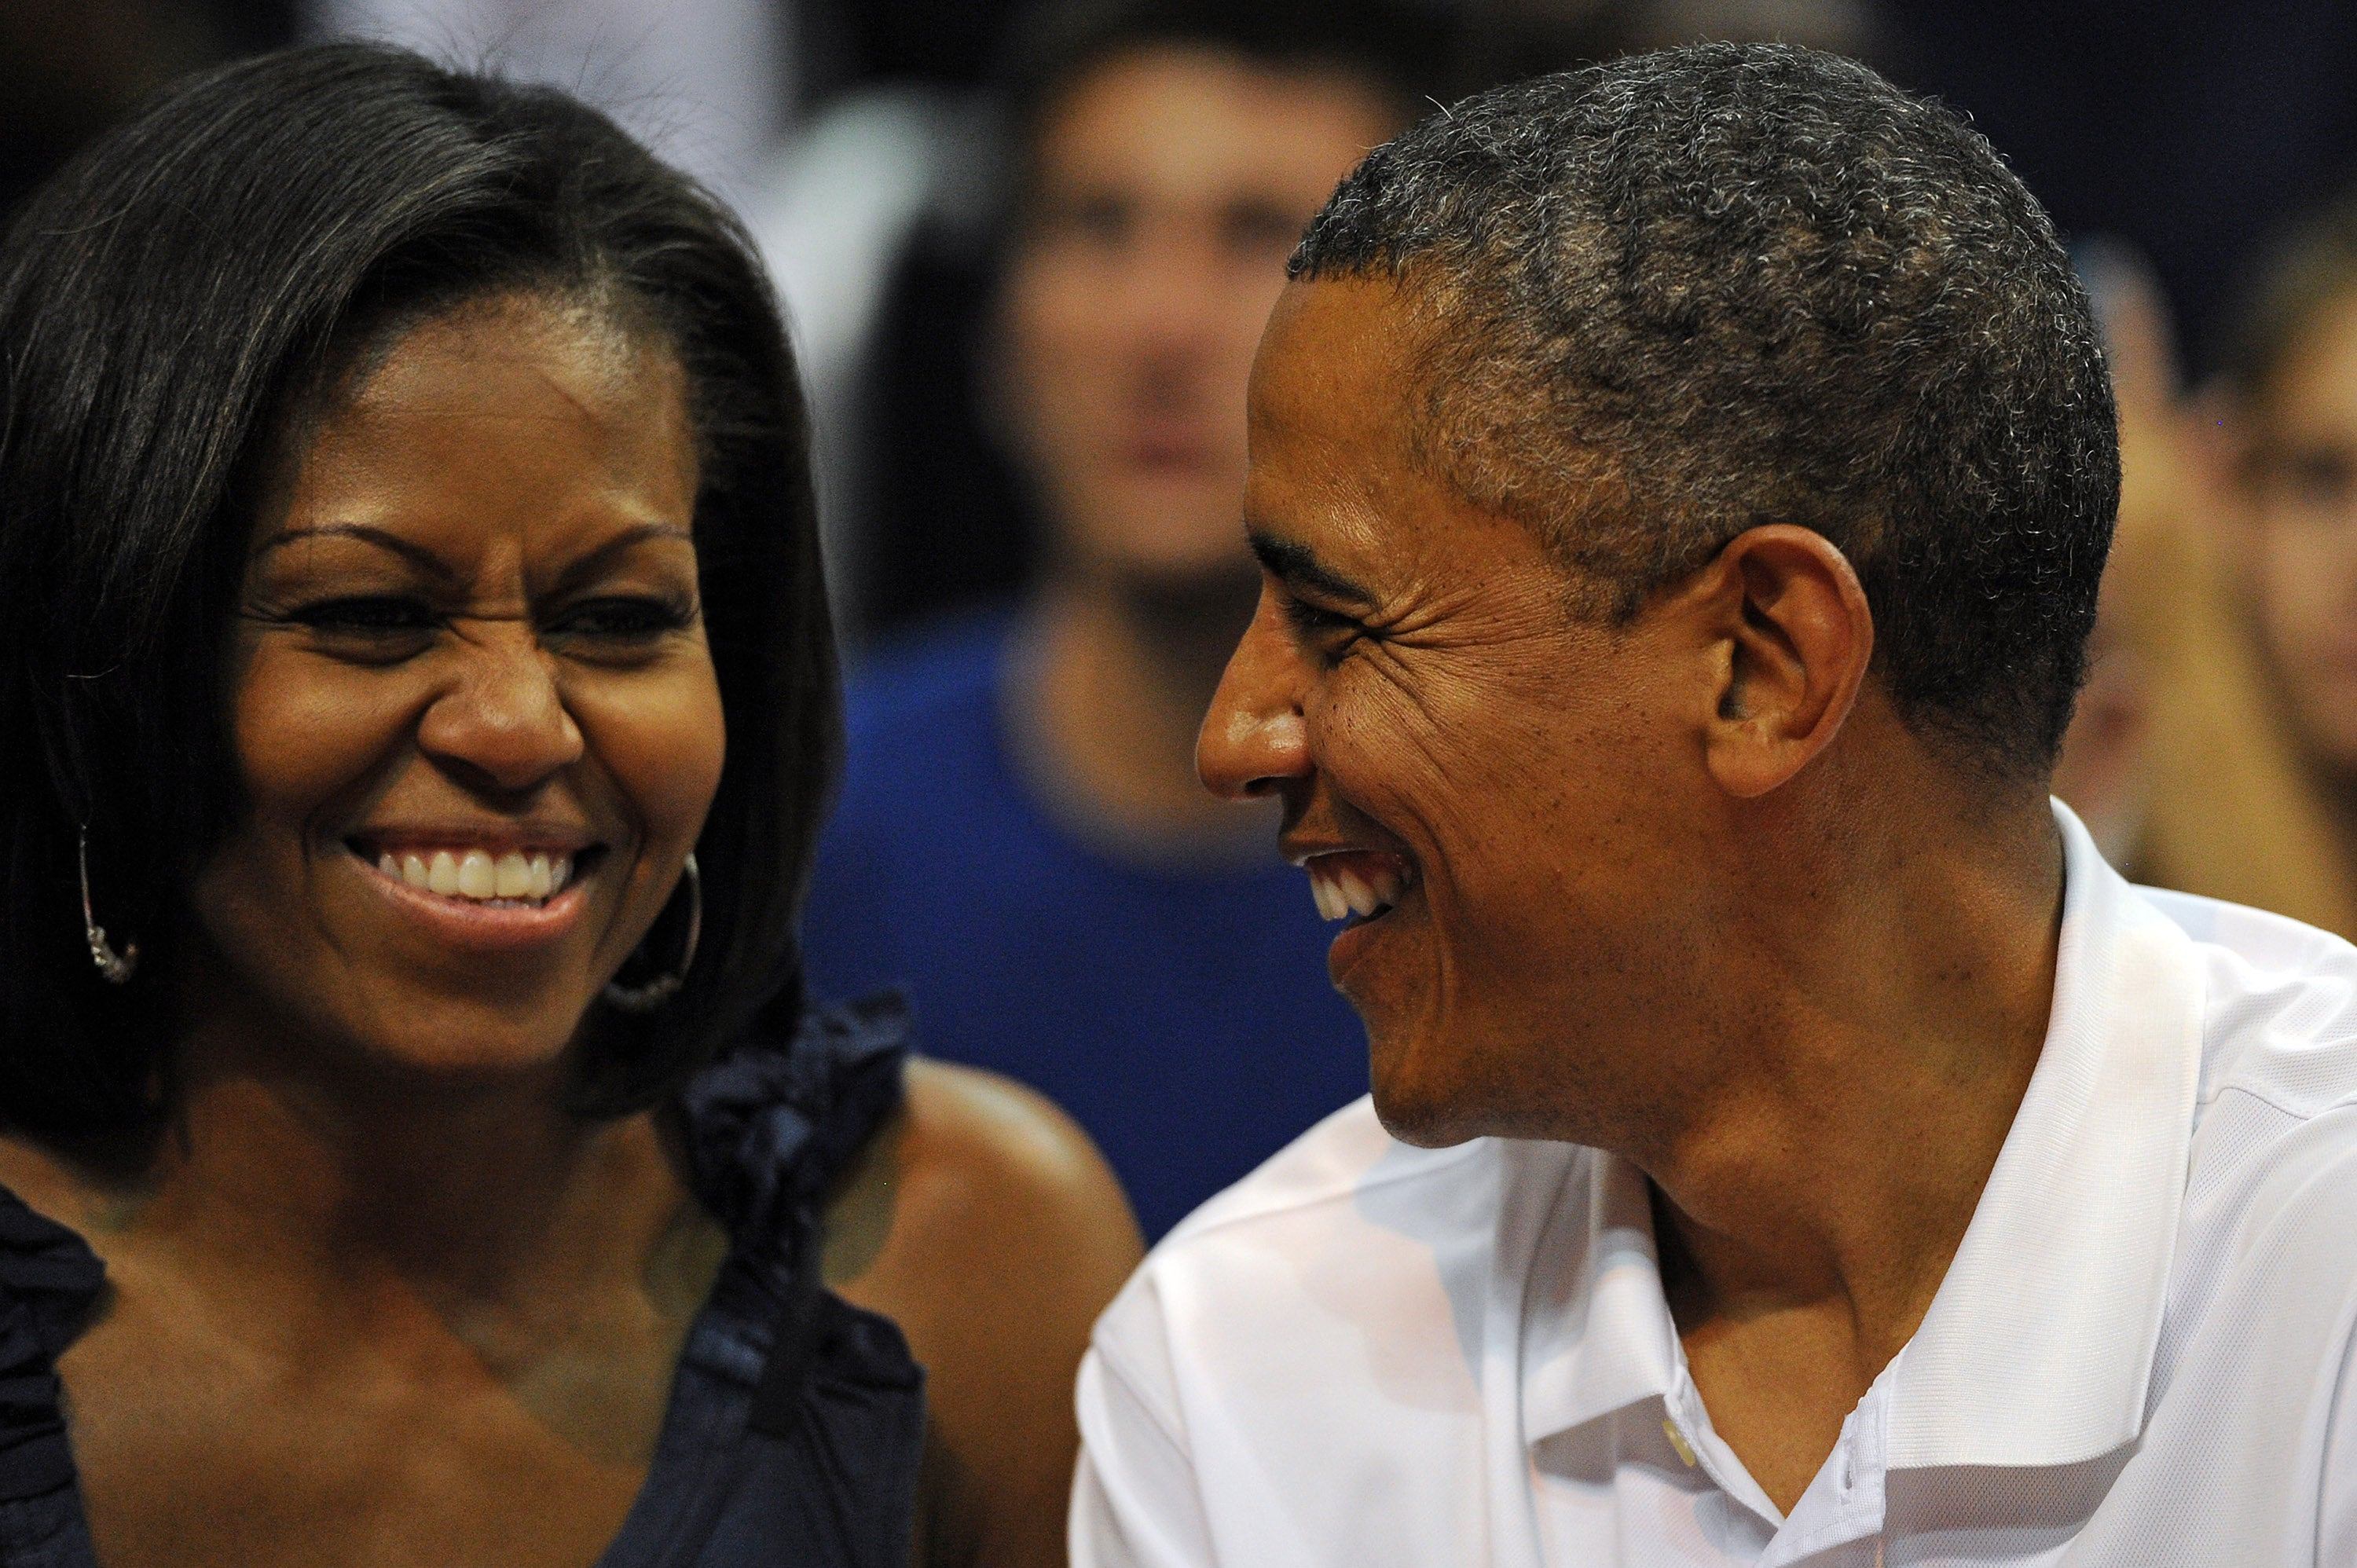 Obamas Receive Rockstar Welcome As They Start Annual Martha's Vineyard Vacation